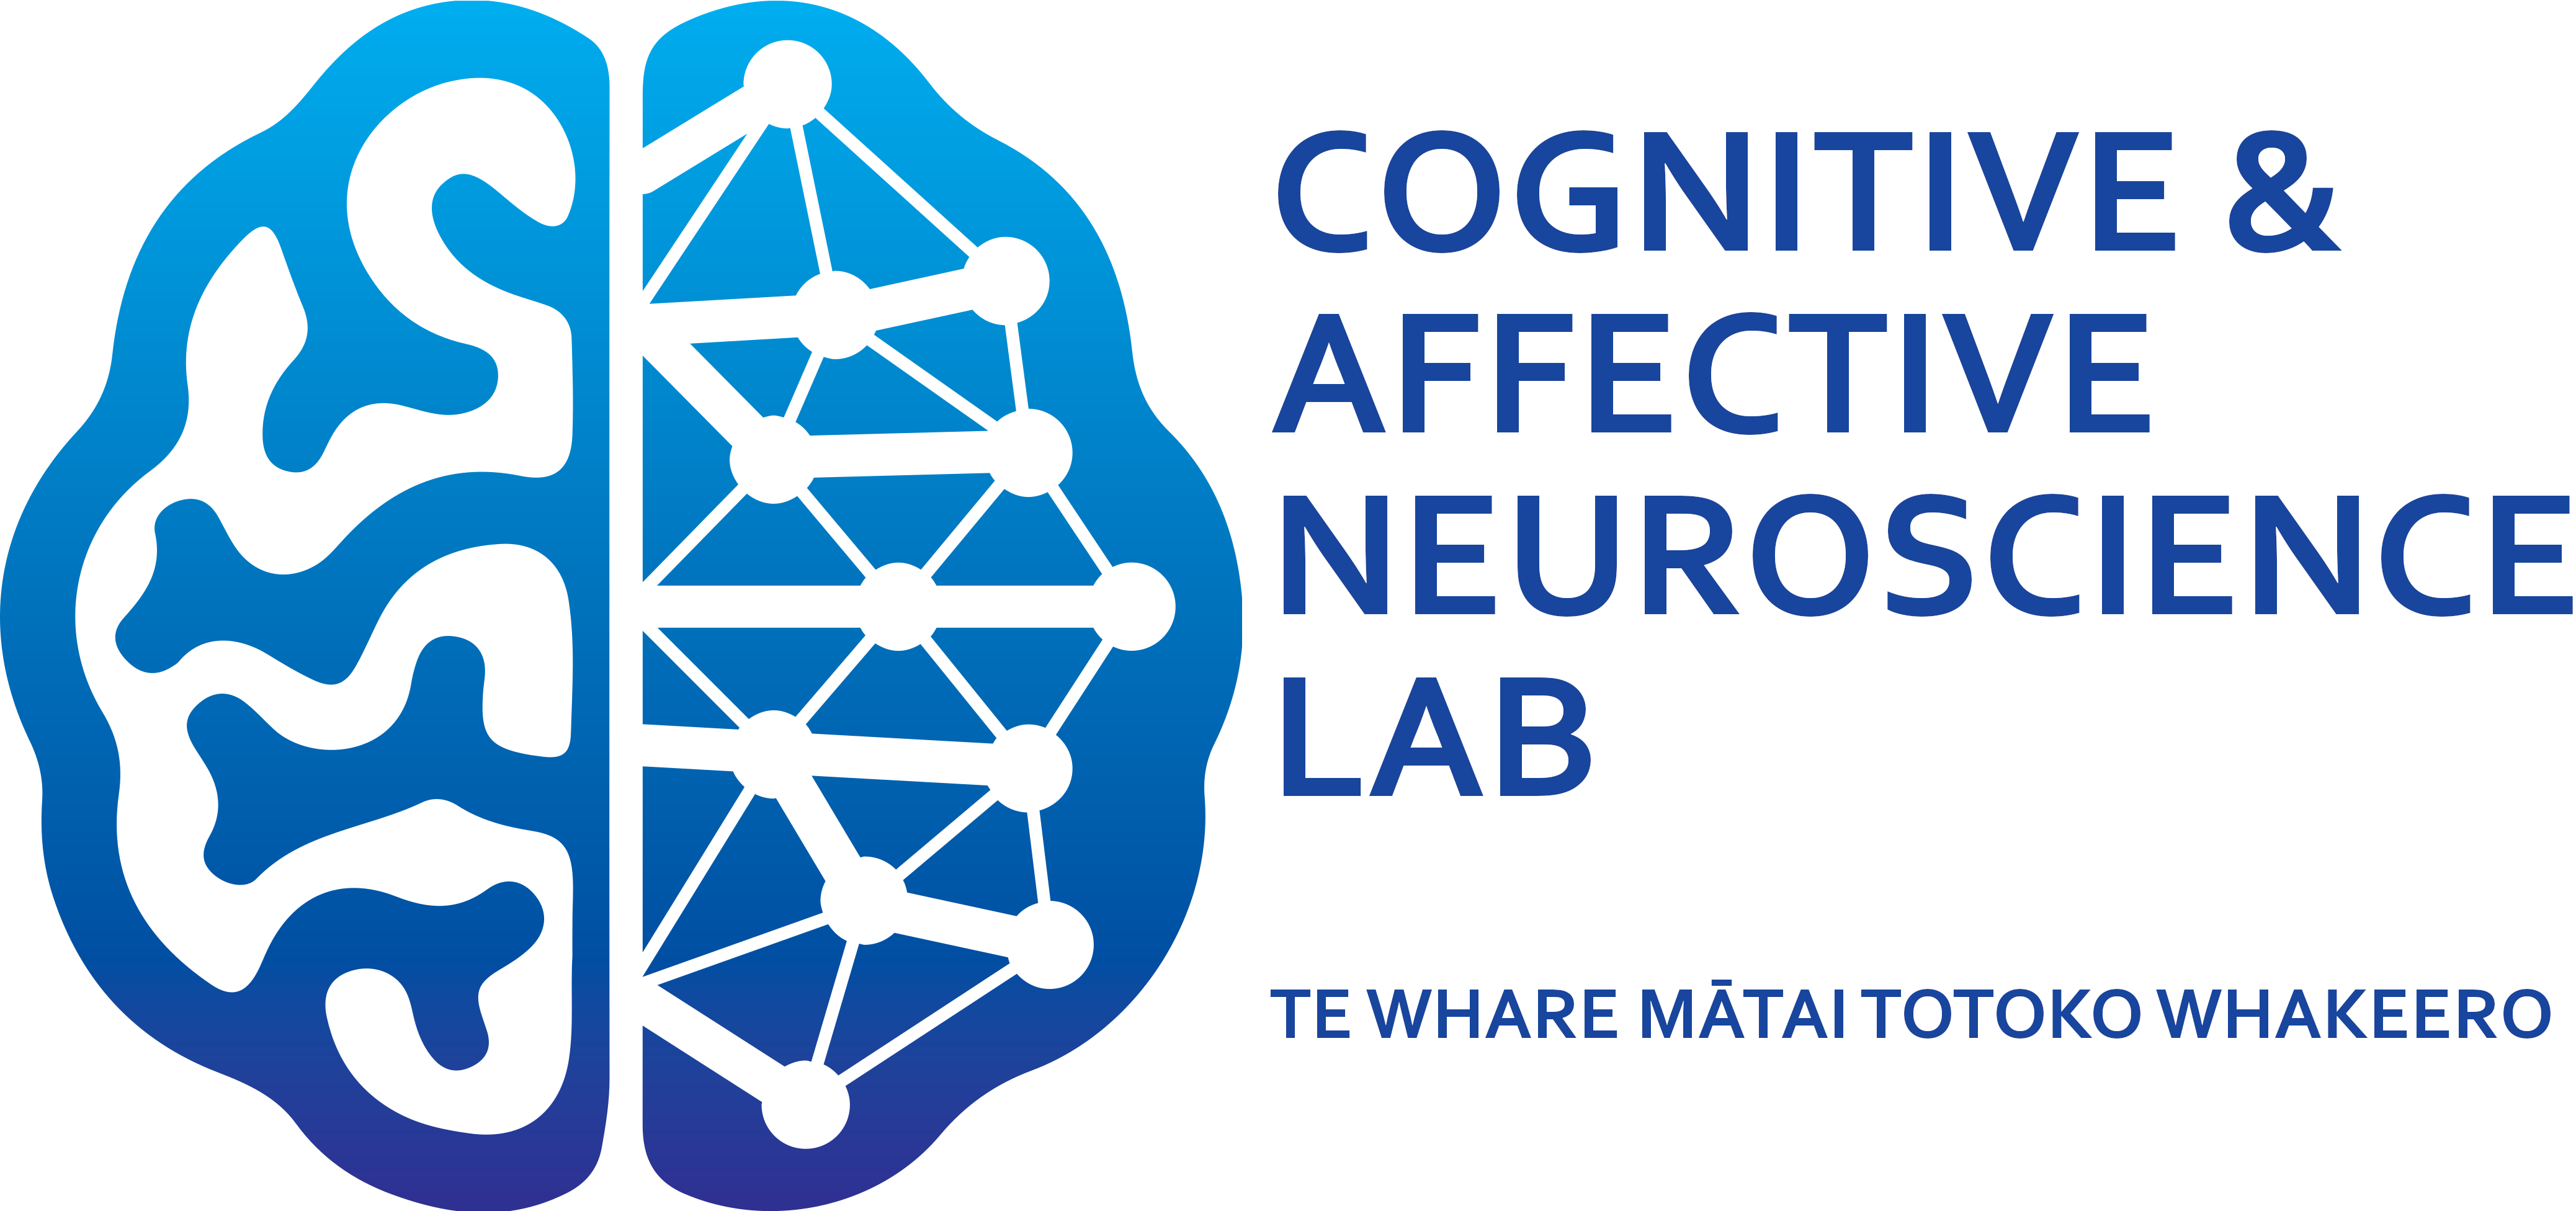 VUW Cognitive & Affective Neuroscience Lab